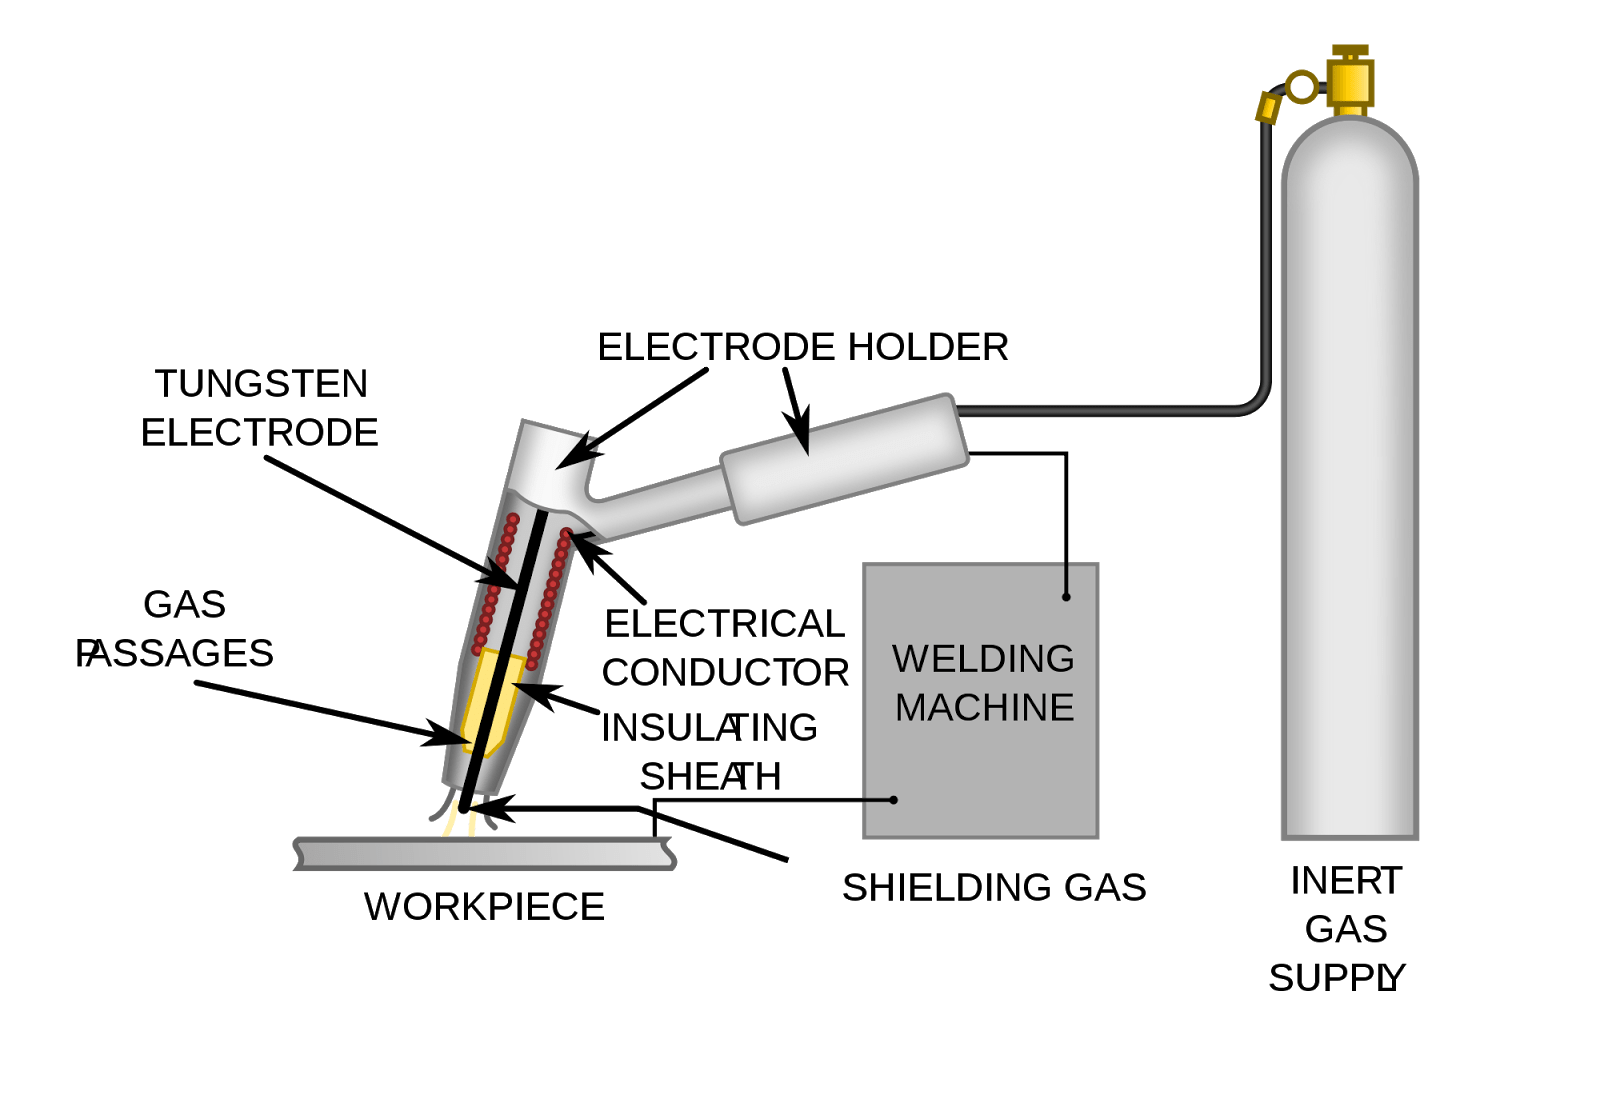 hight resolution of in this process the electrode is not consumable during welding process and gas is used to protect the weld area form atmospheric air